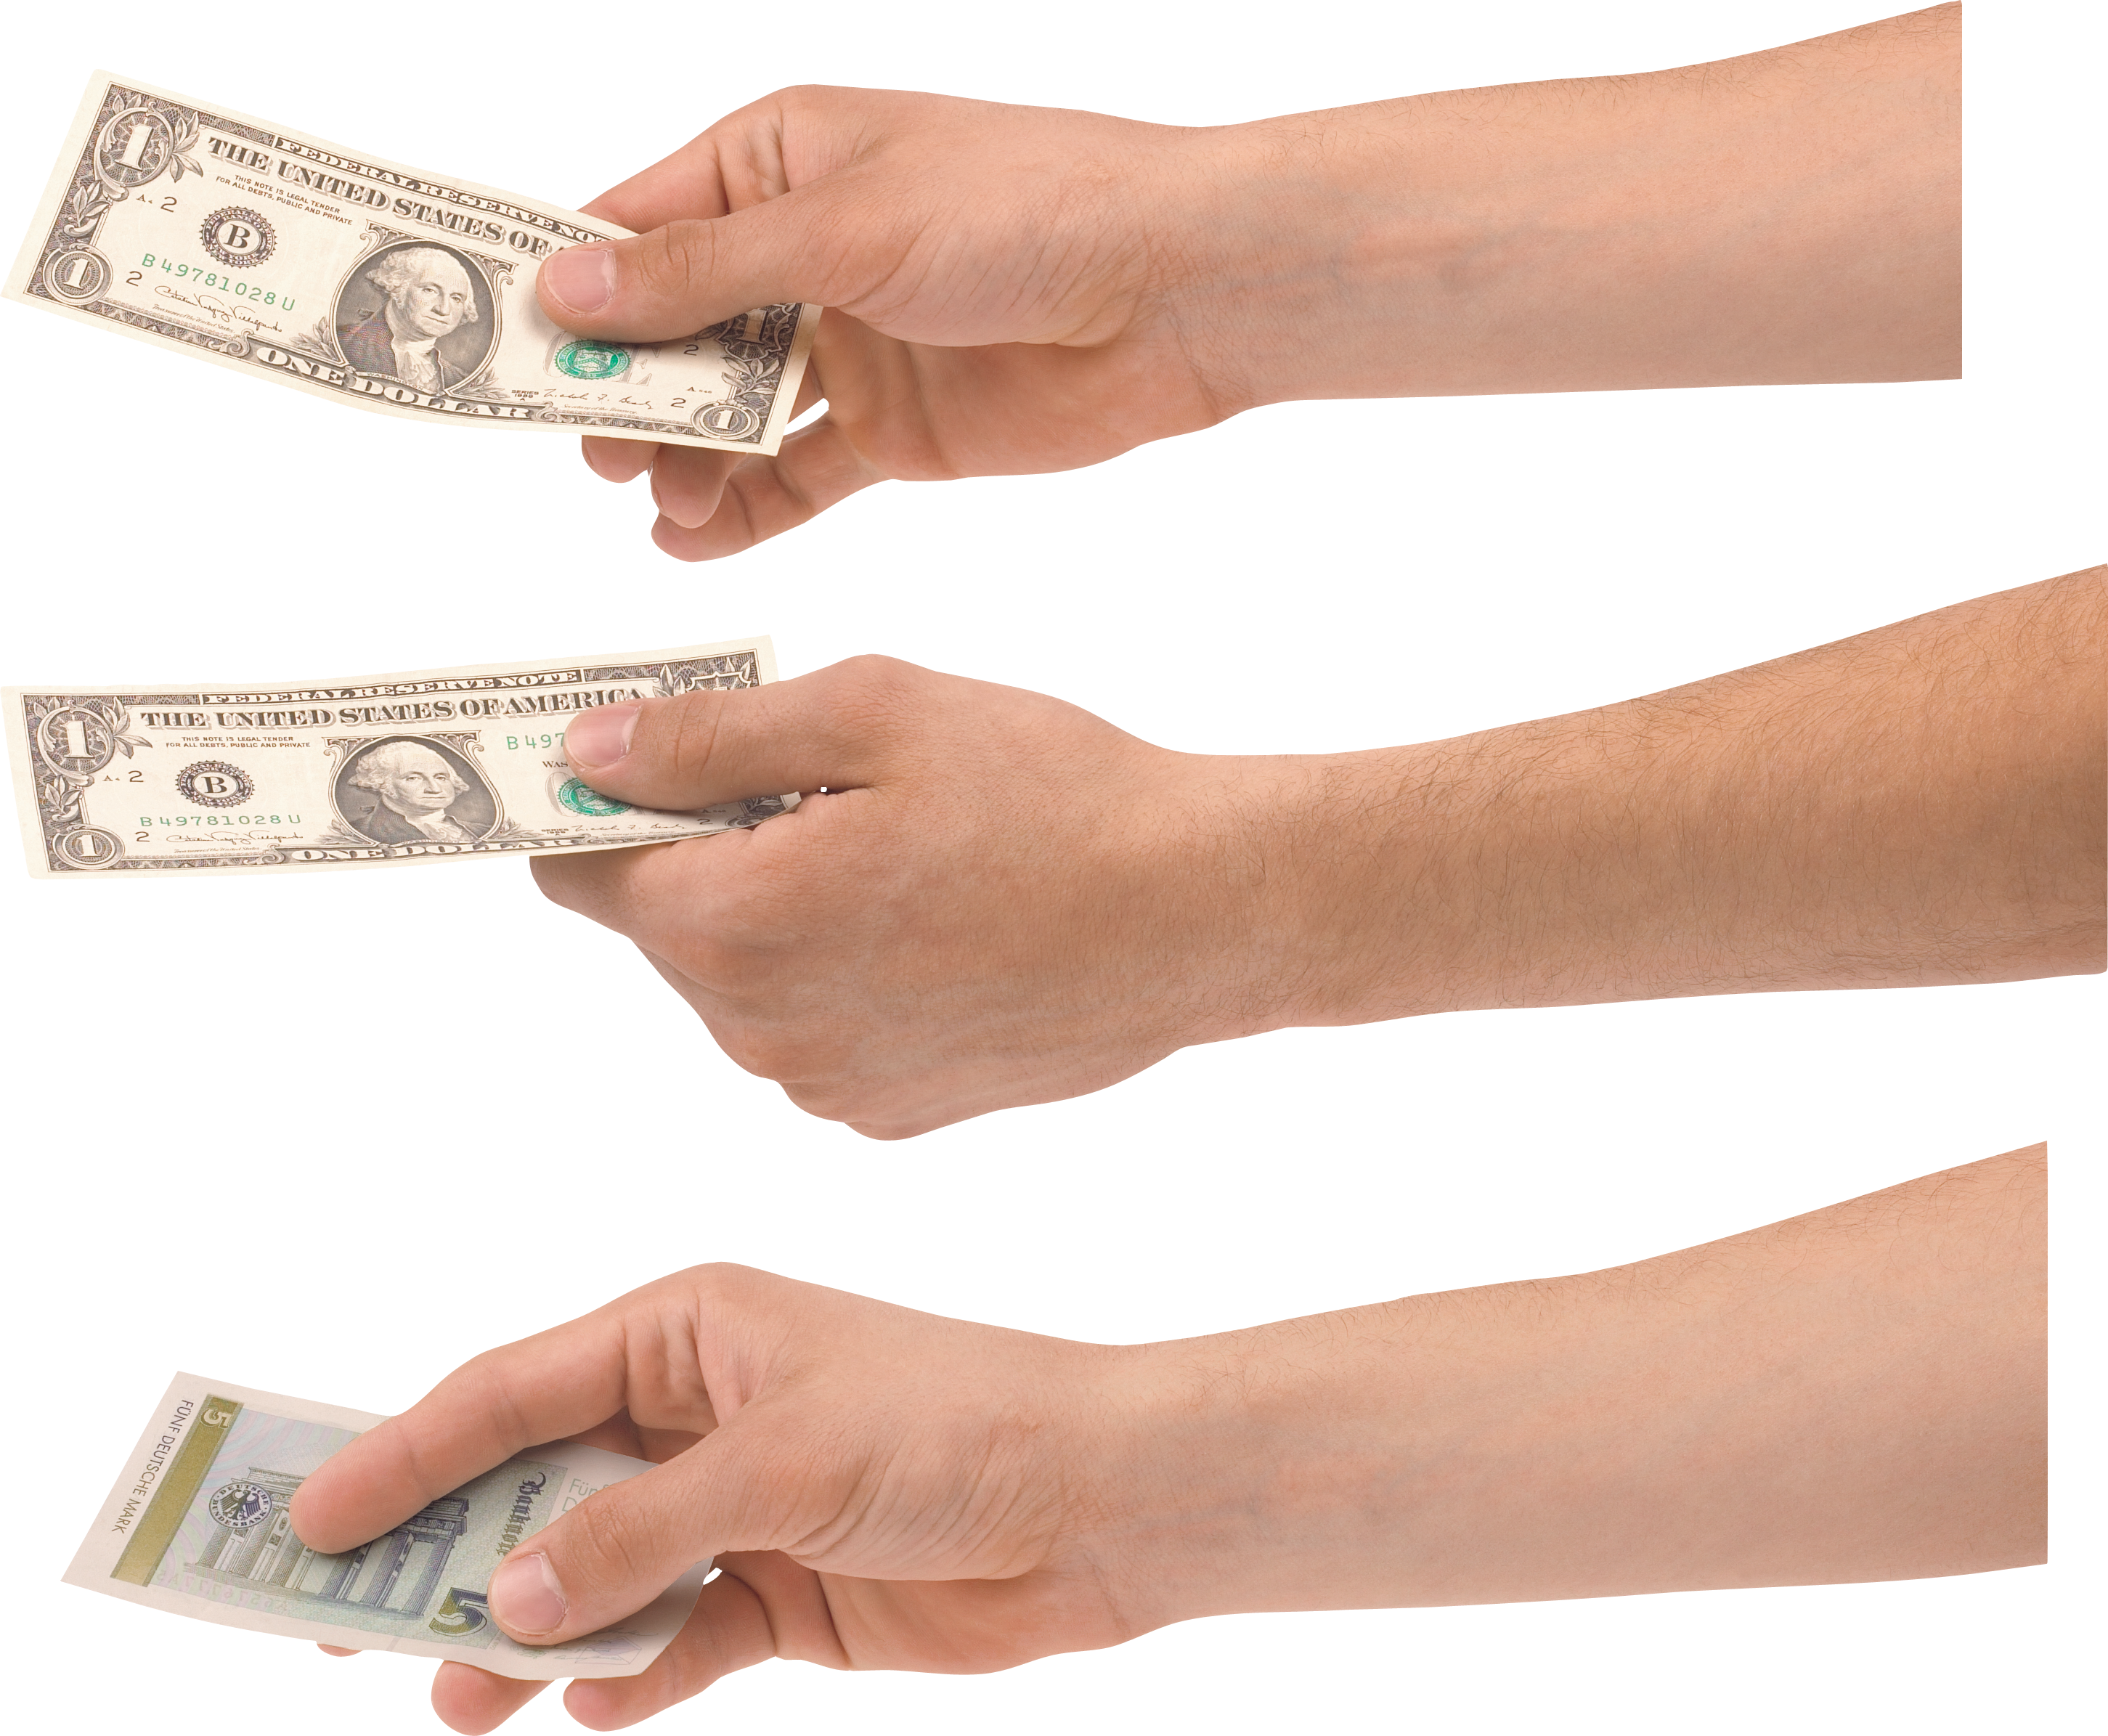 Hands clipart money. Hand holding one isolated